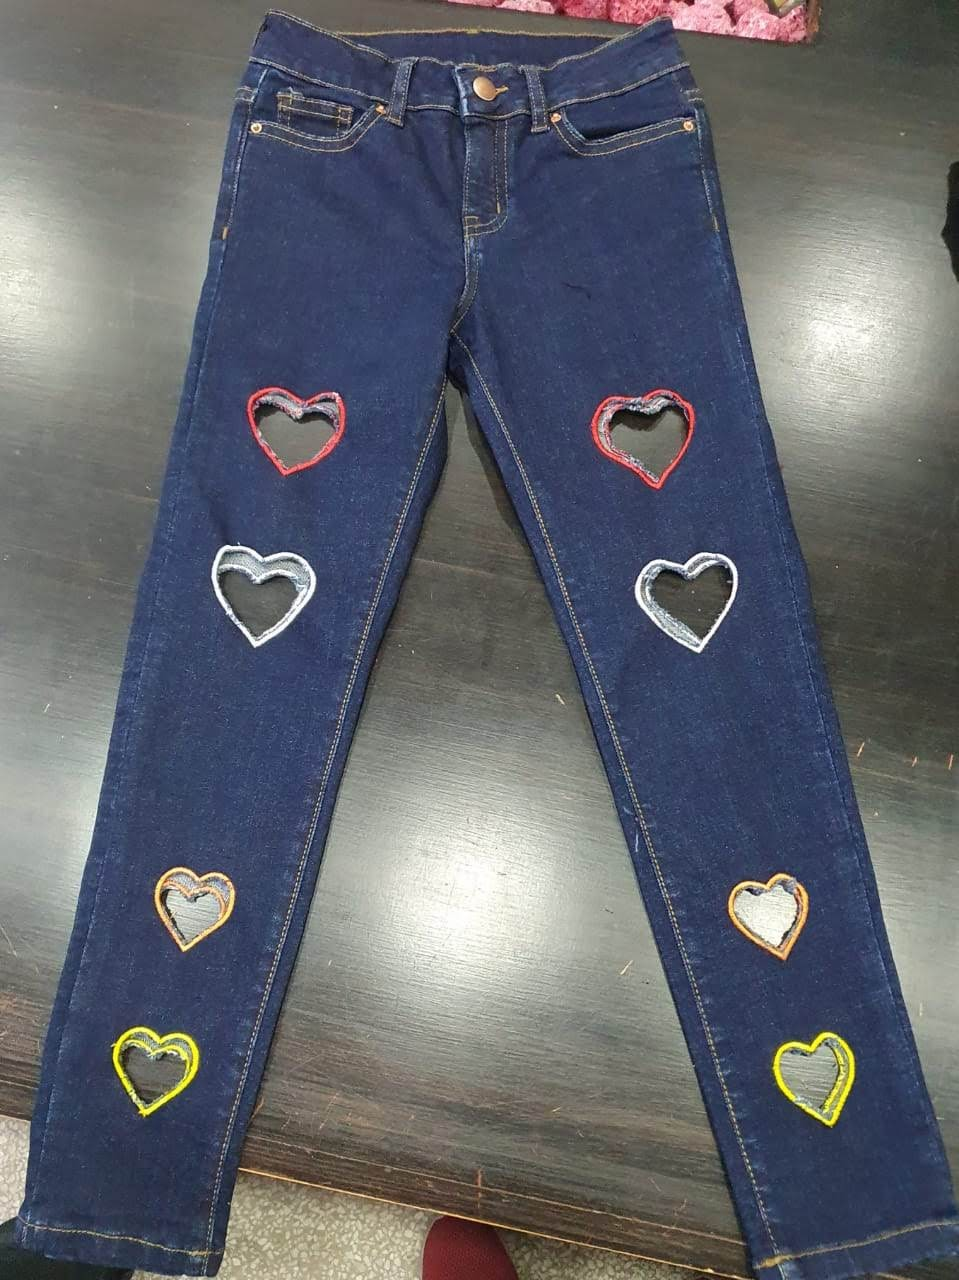 Denim line for kids